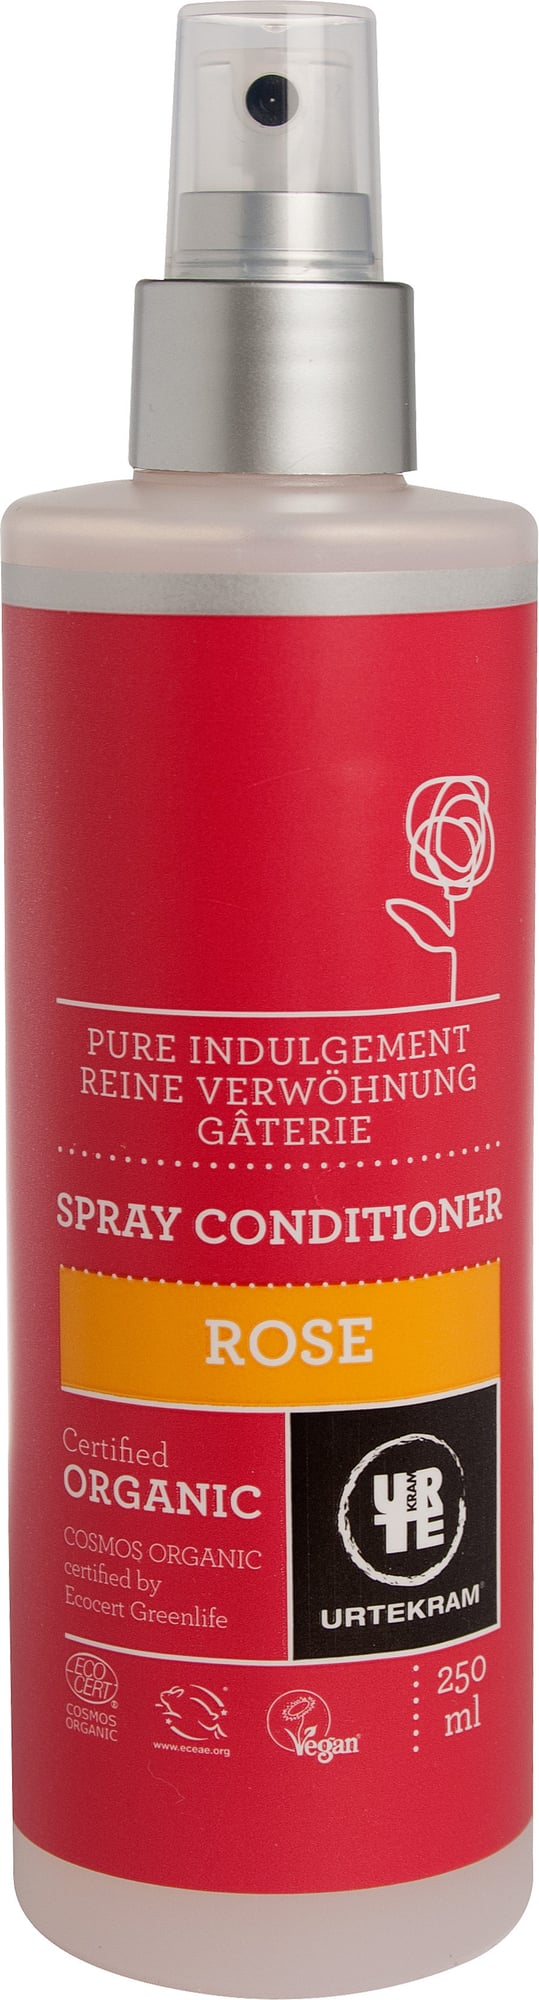 Urtekram Rose SprühConditioner Organic beauty, Hair